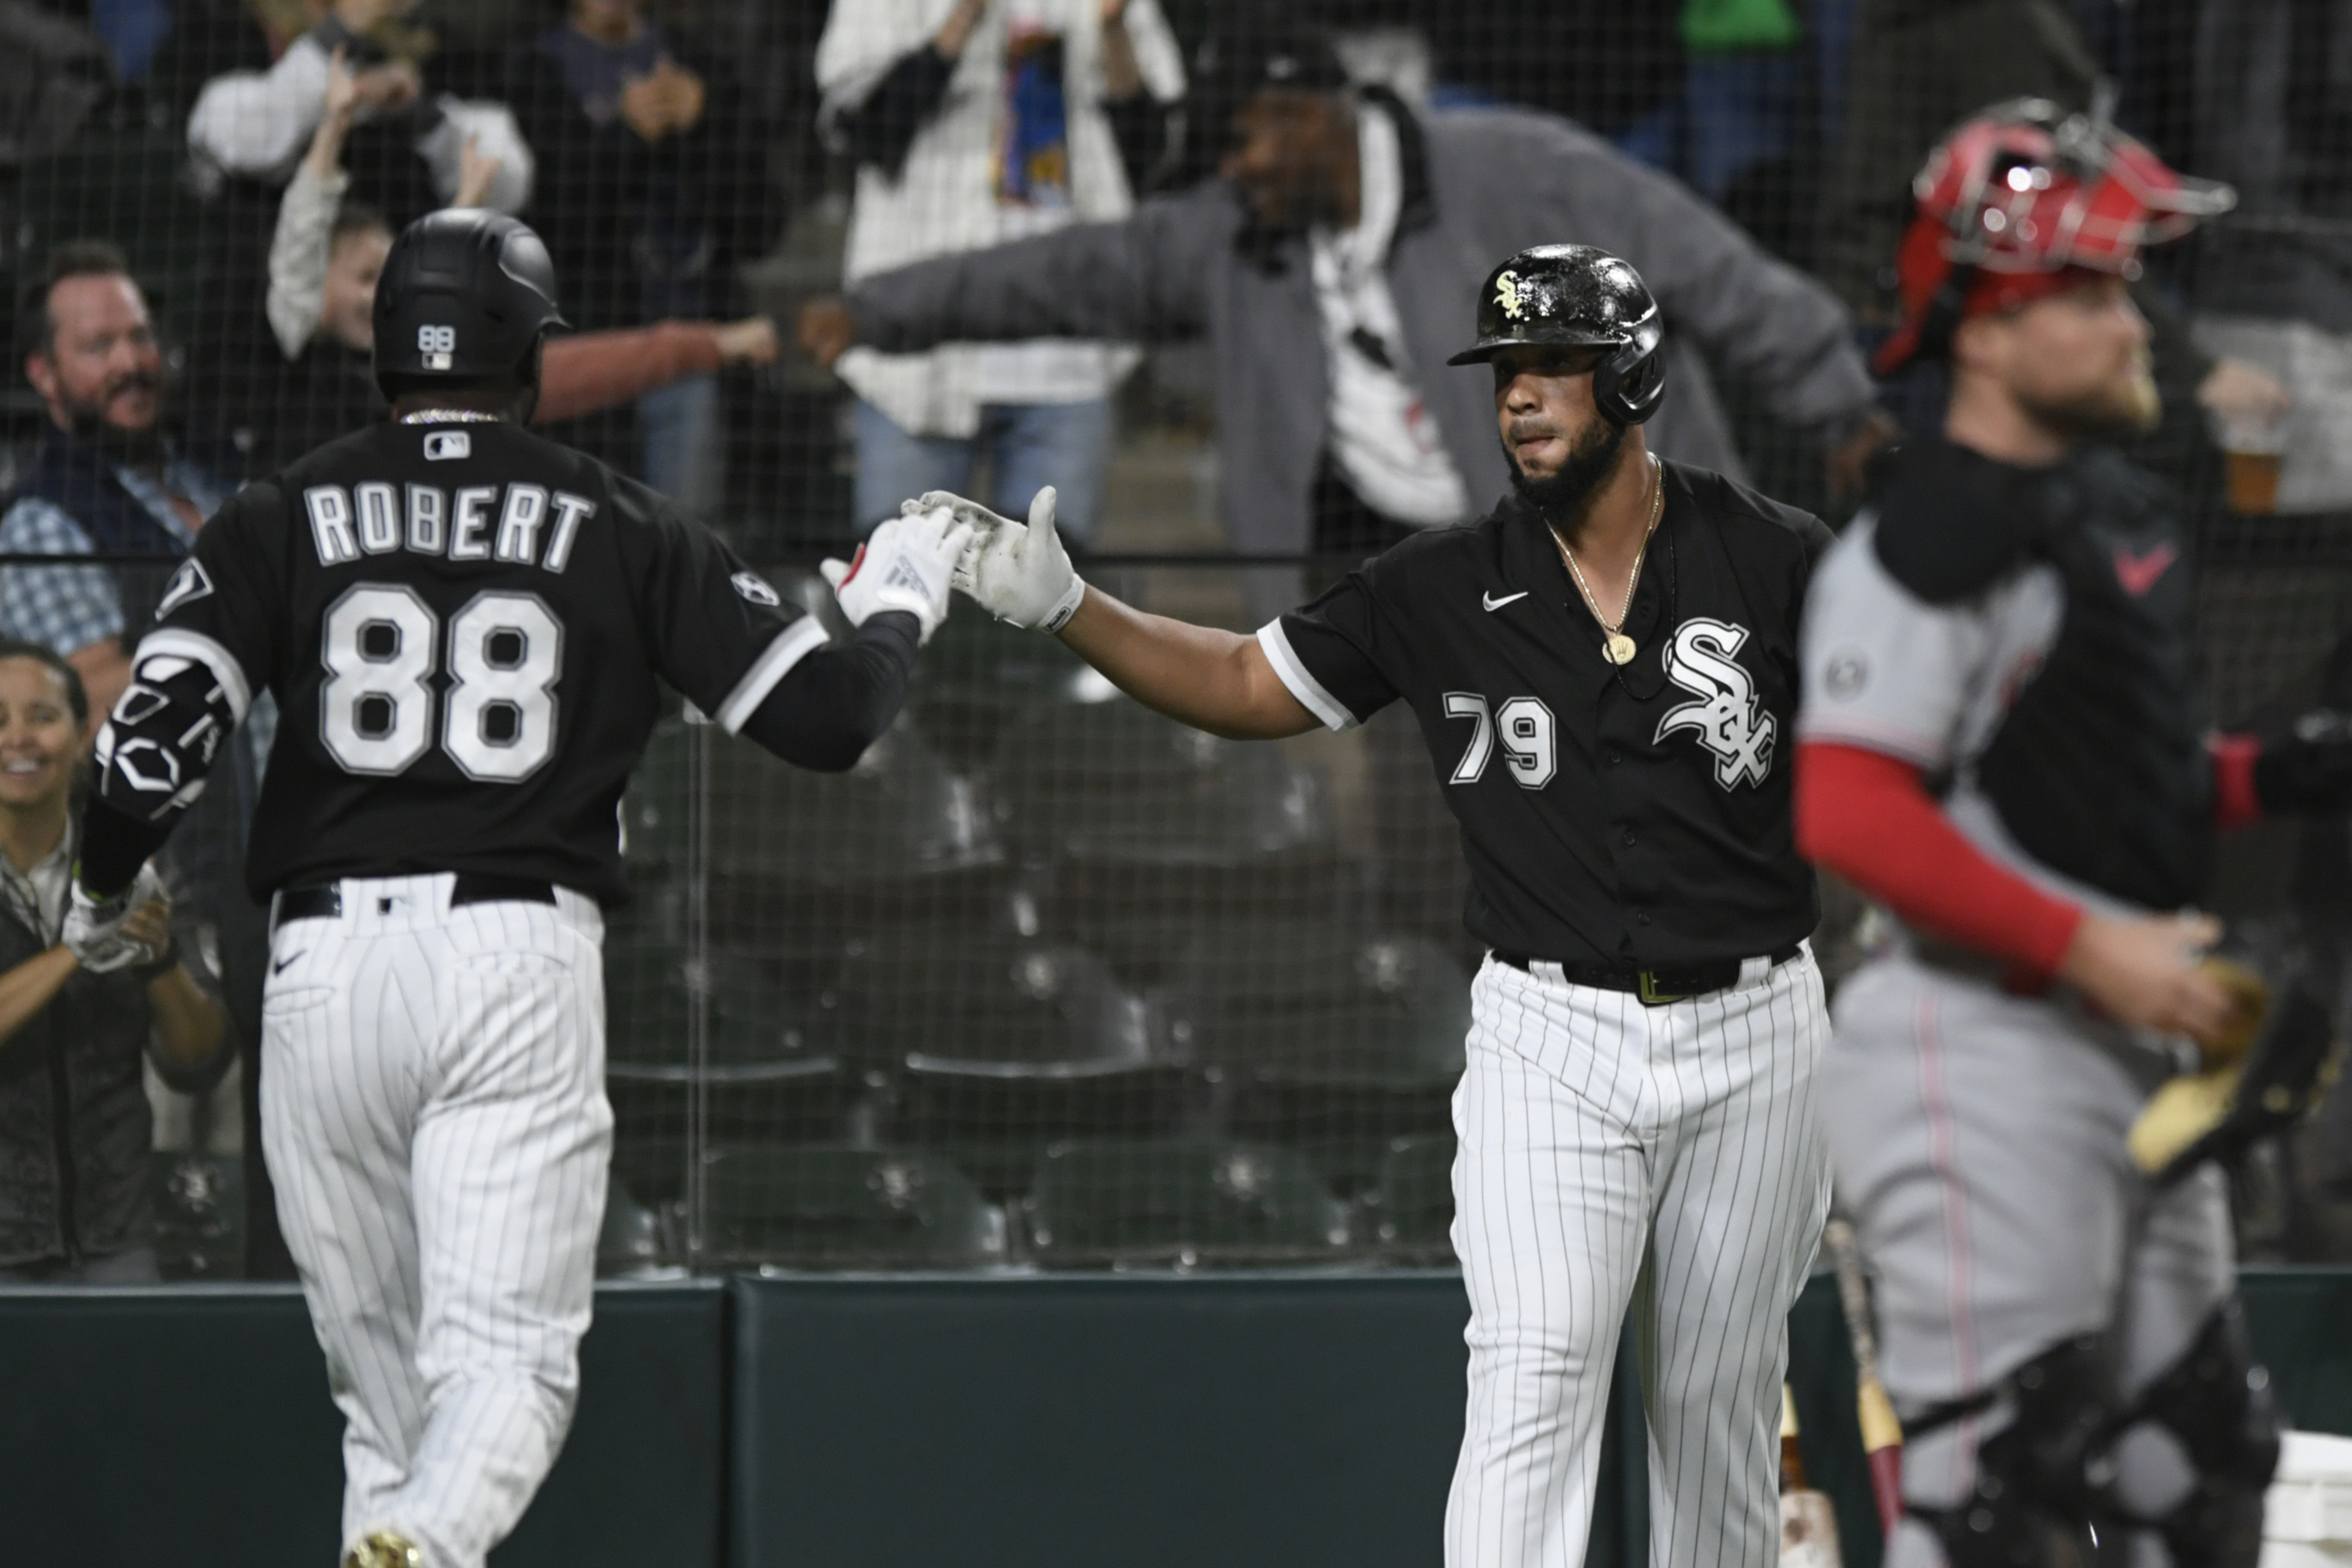 White Sox center fielder Luis Robert (88) celebrates with teammate Jose Abreu after hitting the first of two home runs against the Cincinnati Reds on Tuesday.